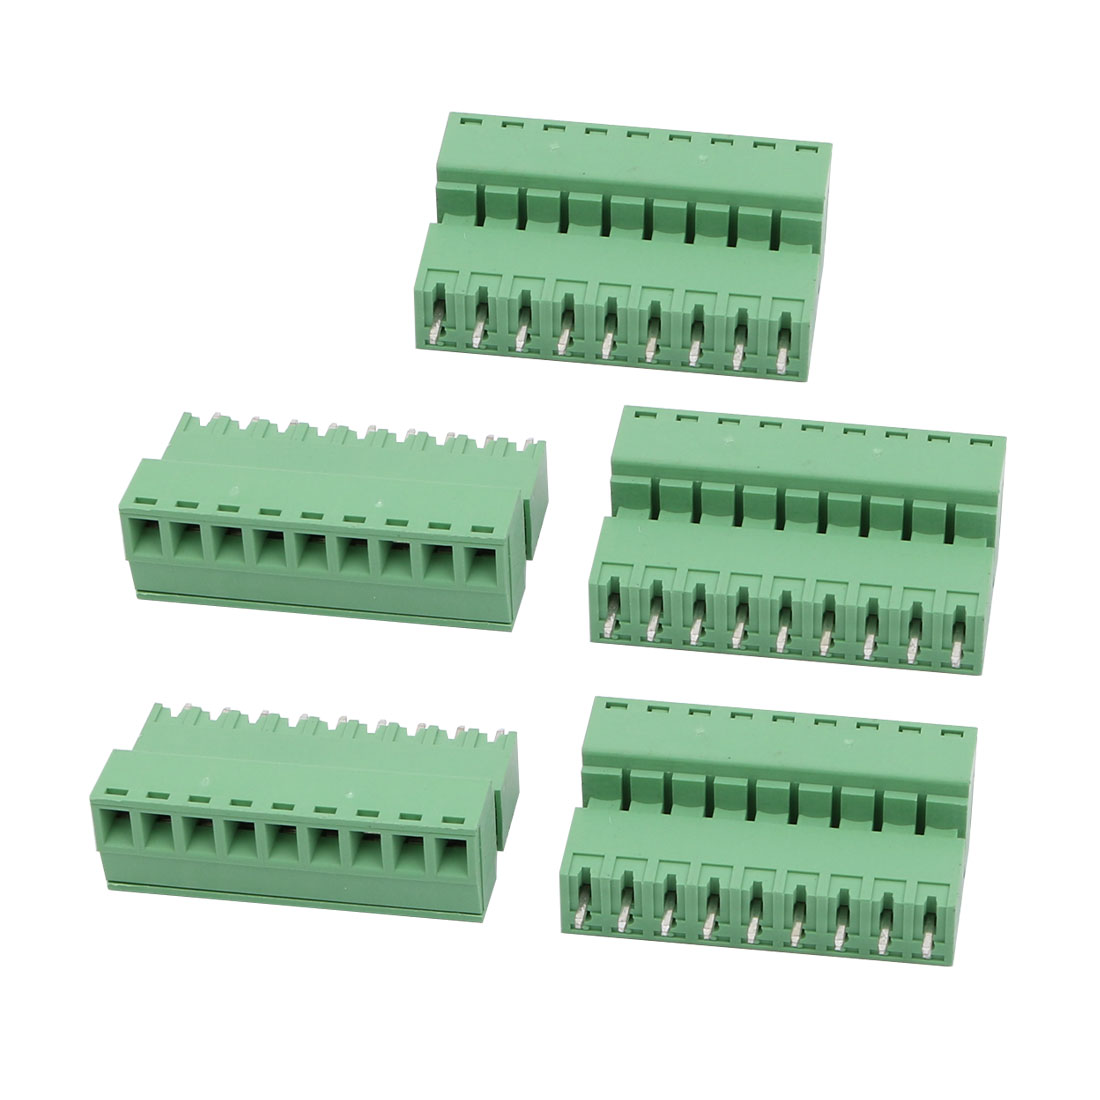 5Sets AC 300V 8A 3.81mm Pitch 9P PCB Terminal Block Female Male Wire Connector